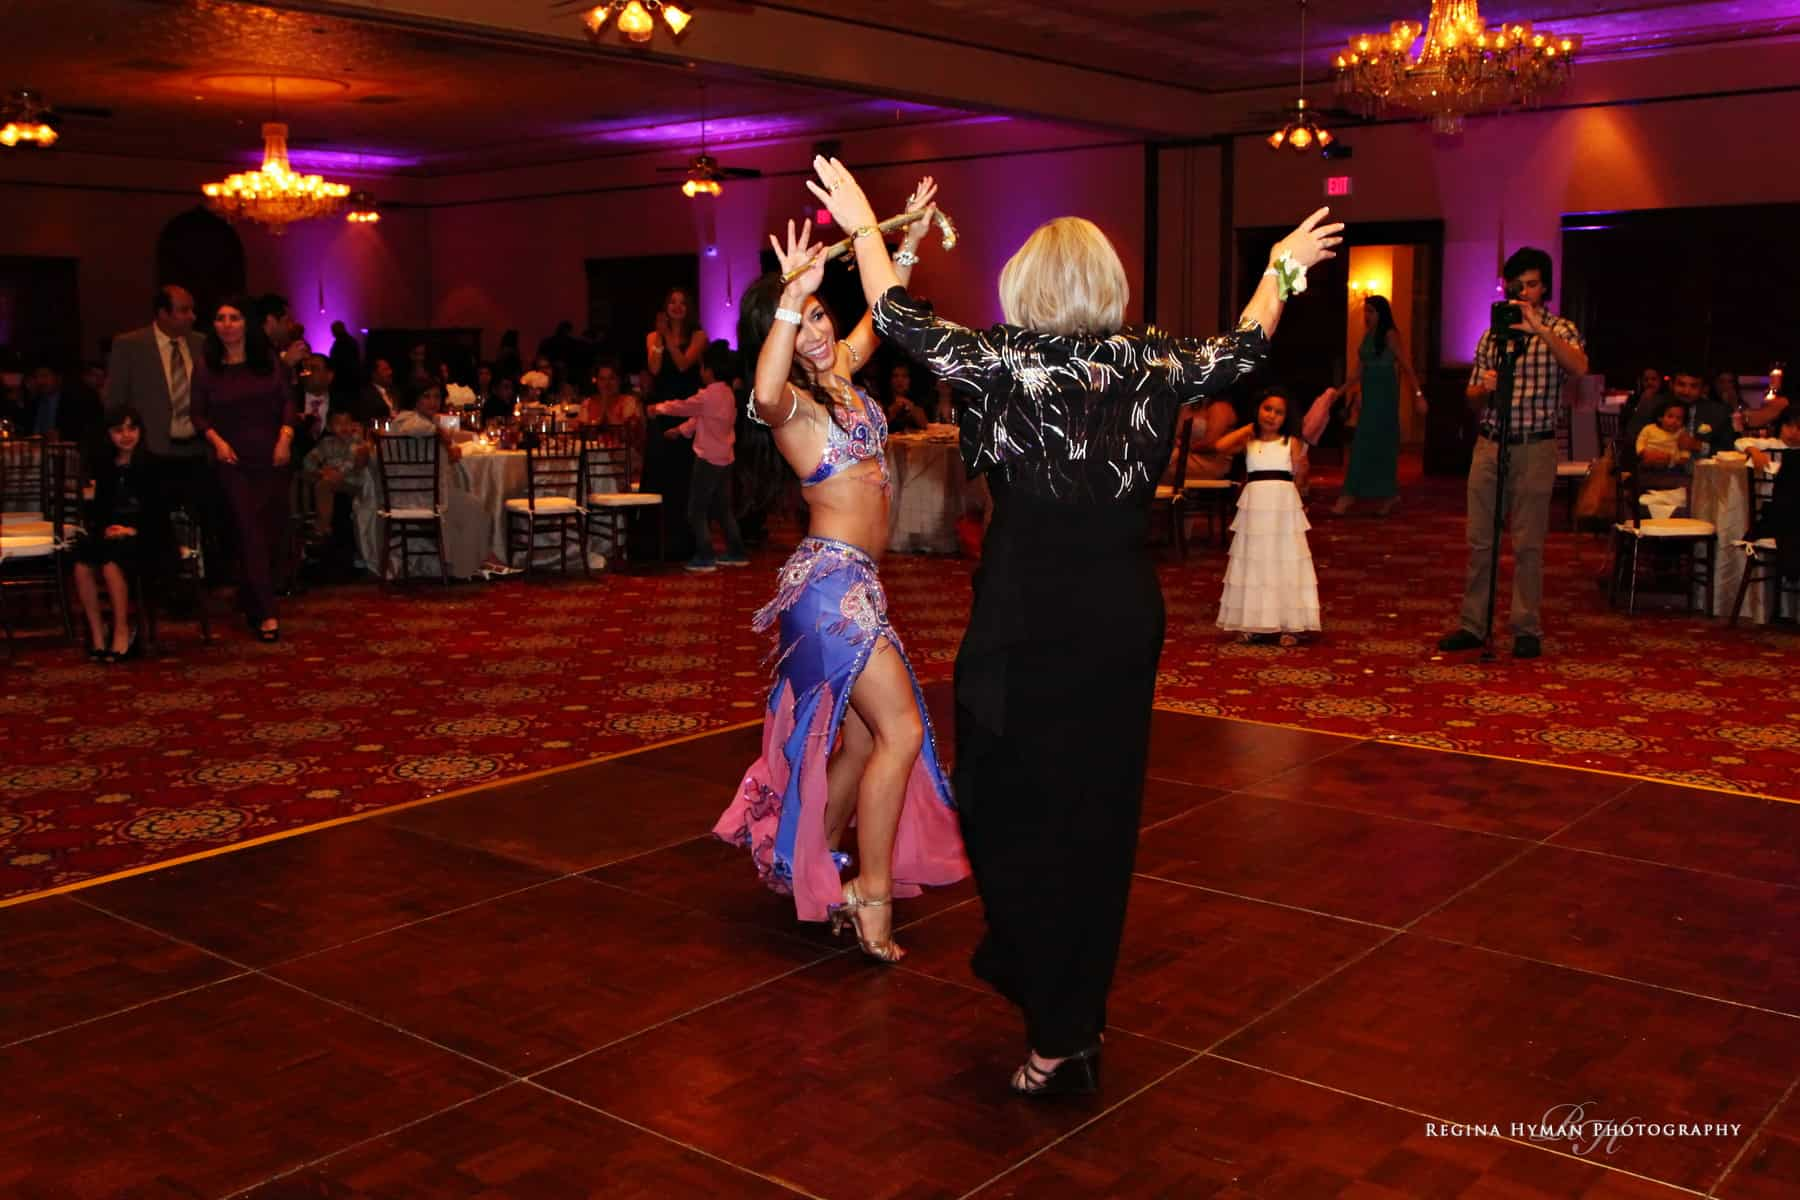 Orlando wedding belly dancer Carrara Nour performs an Egyptian cane dance at the Ballroom at Church Street in Orlando